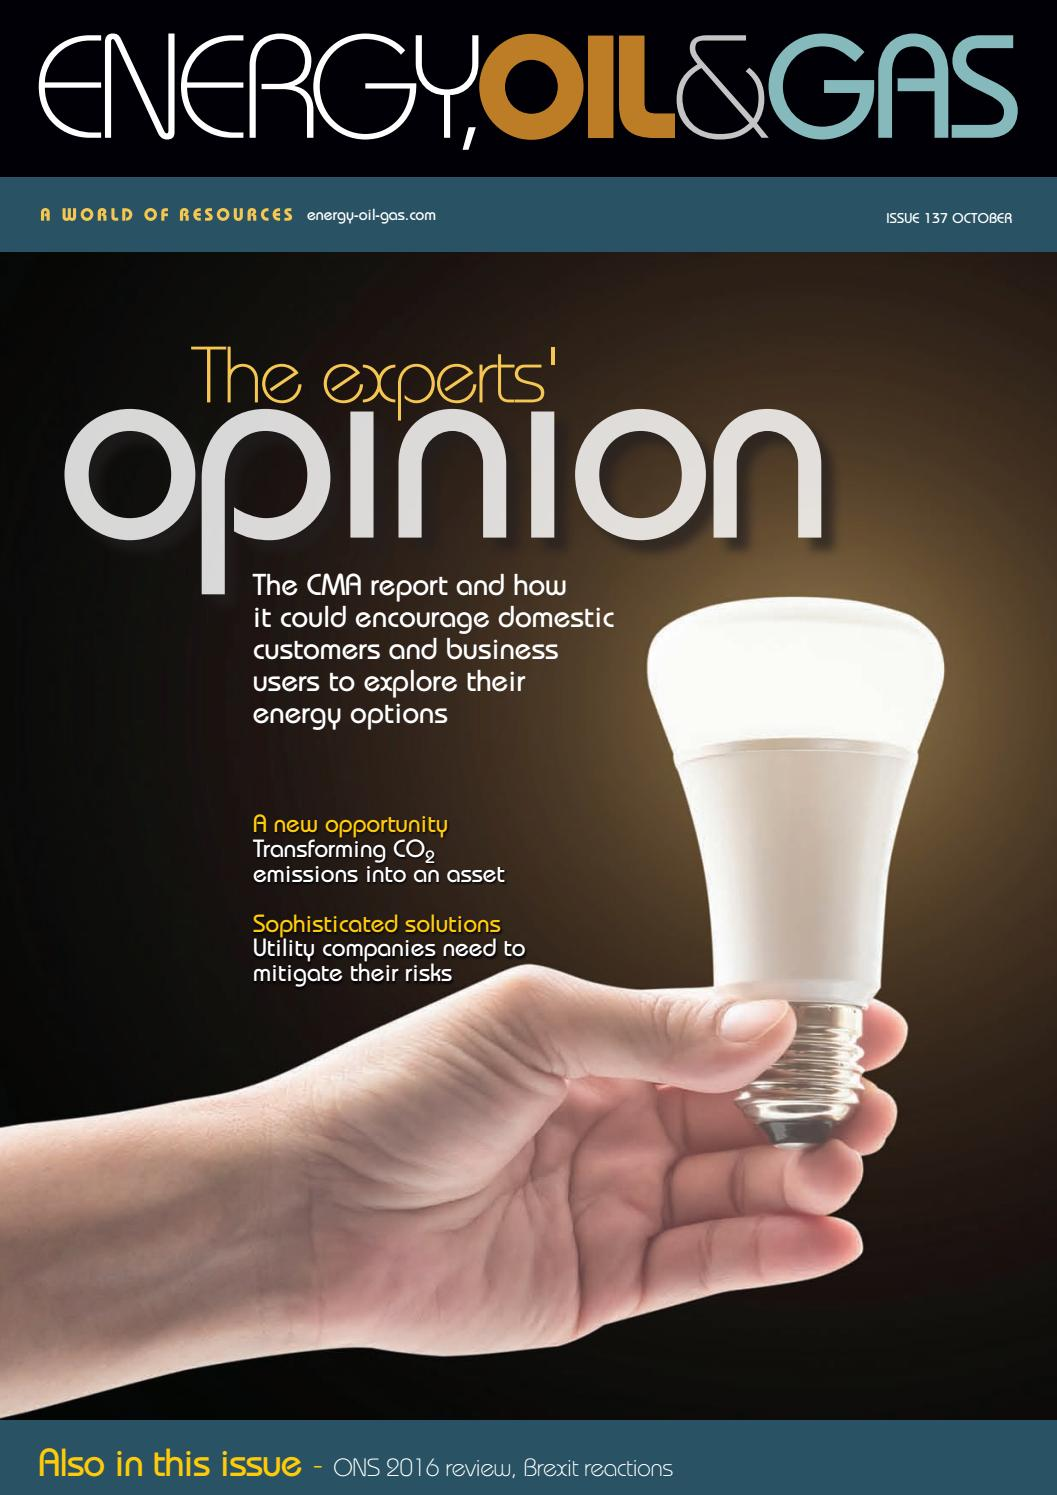 Energy Oil Gas Issue 137 October 2016 By Schofield Publishing Ltd Use For The Tesla Switch Page 58 Energetic Forum Issuu